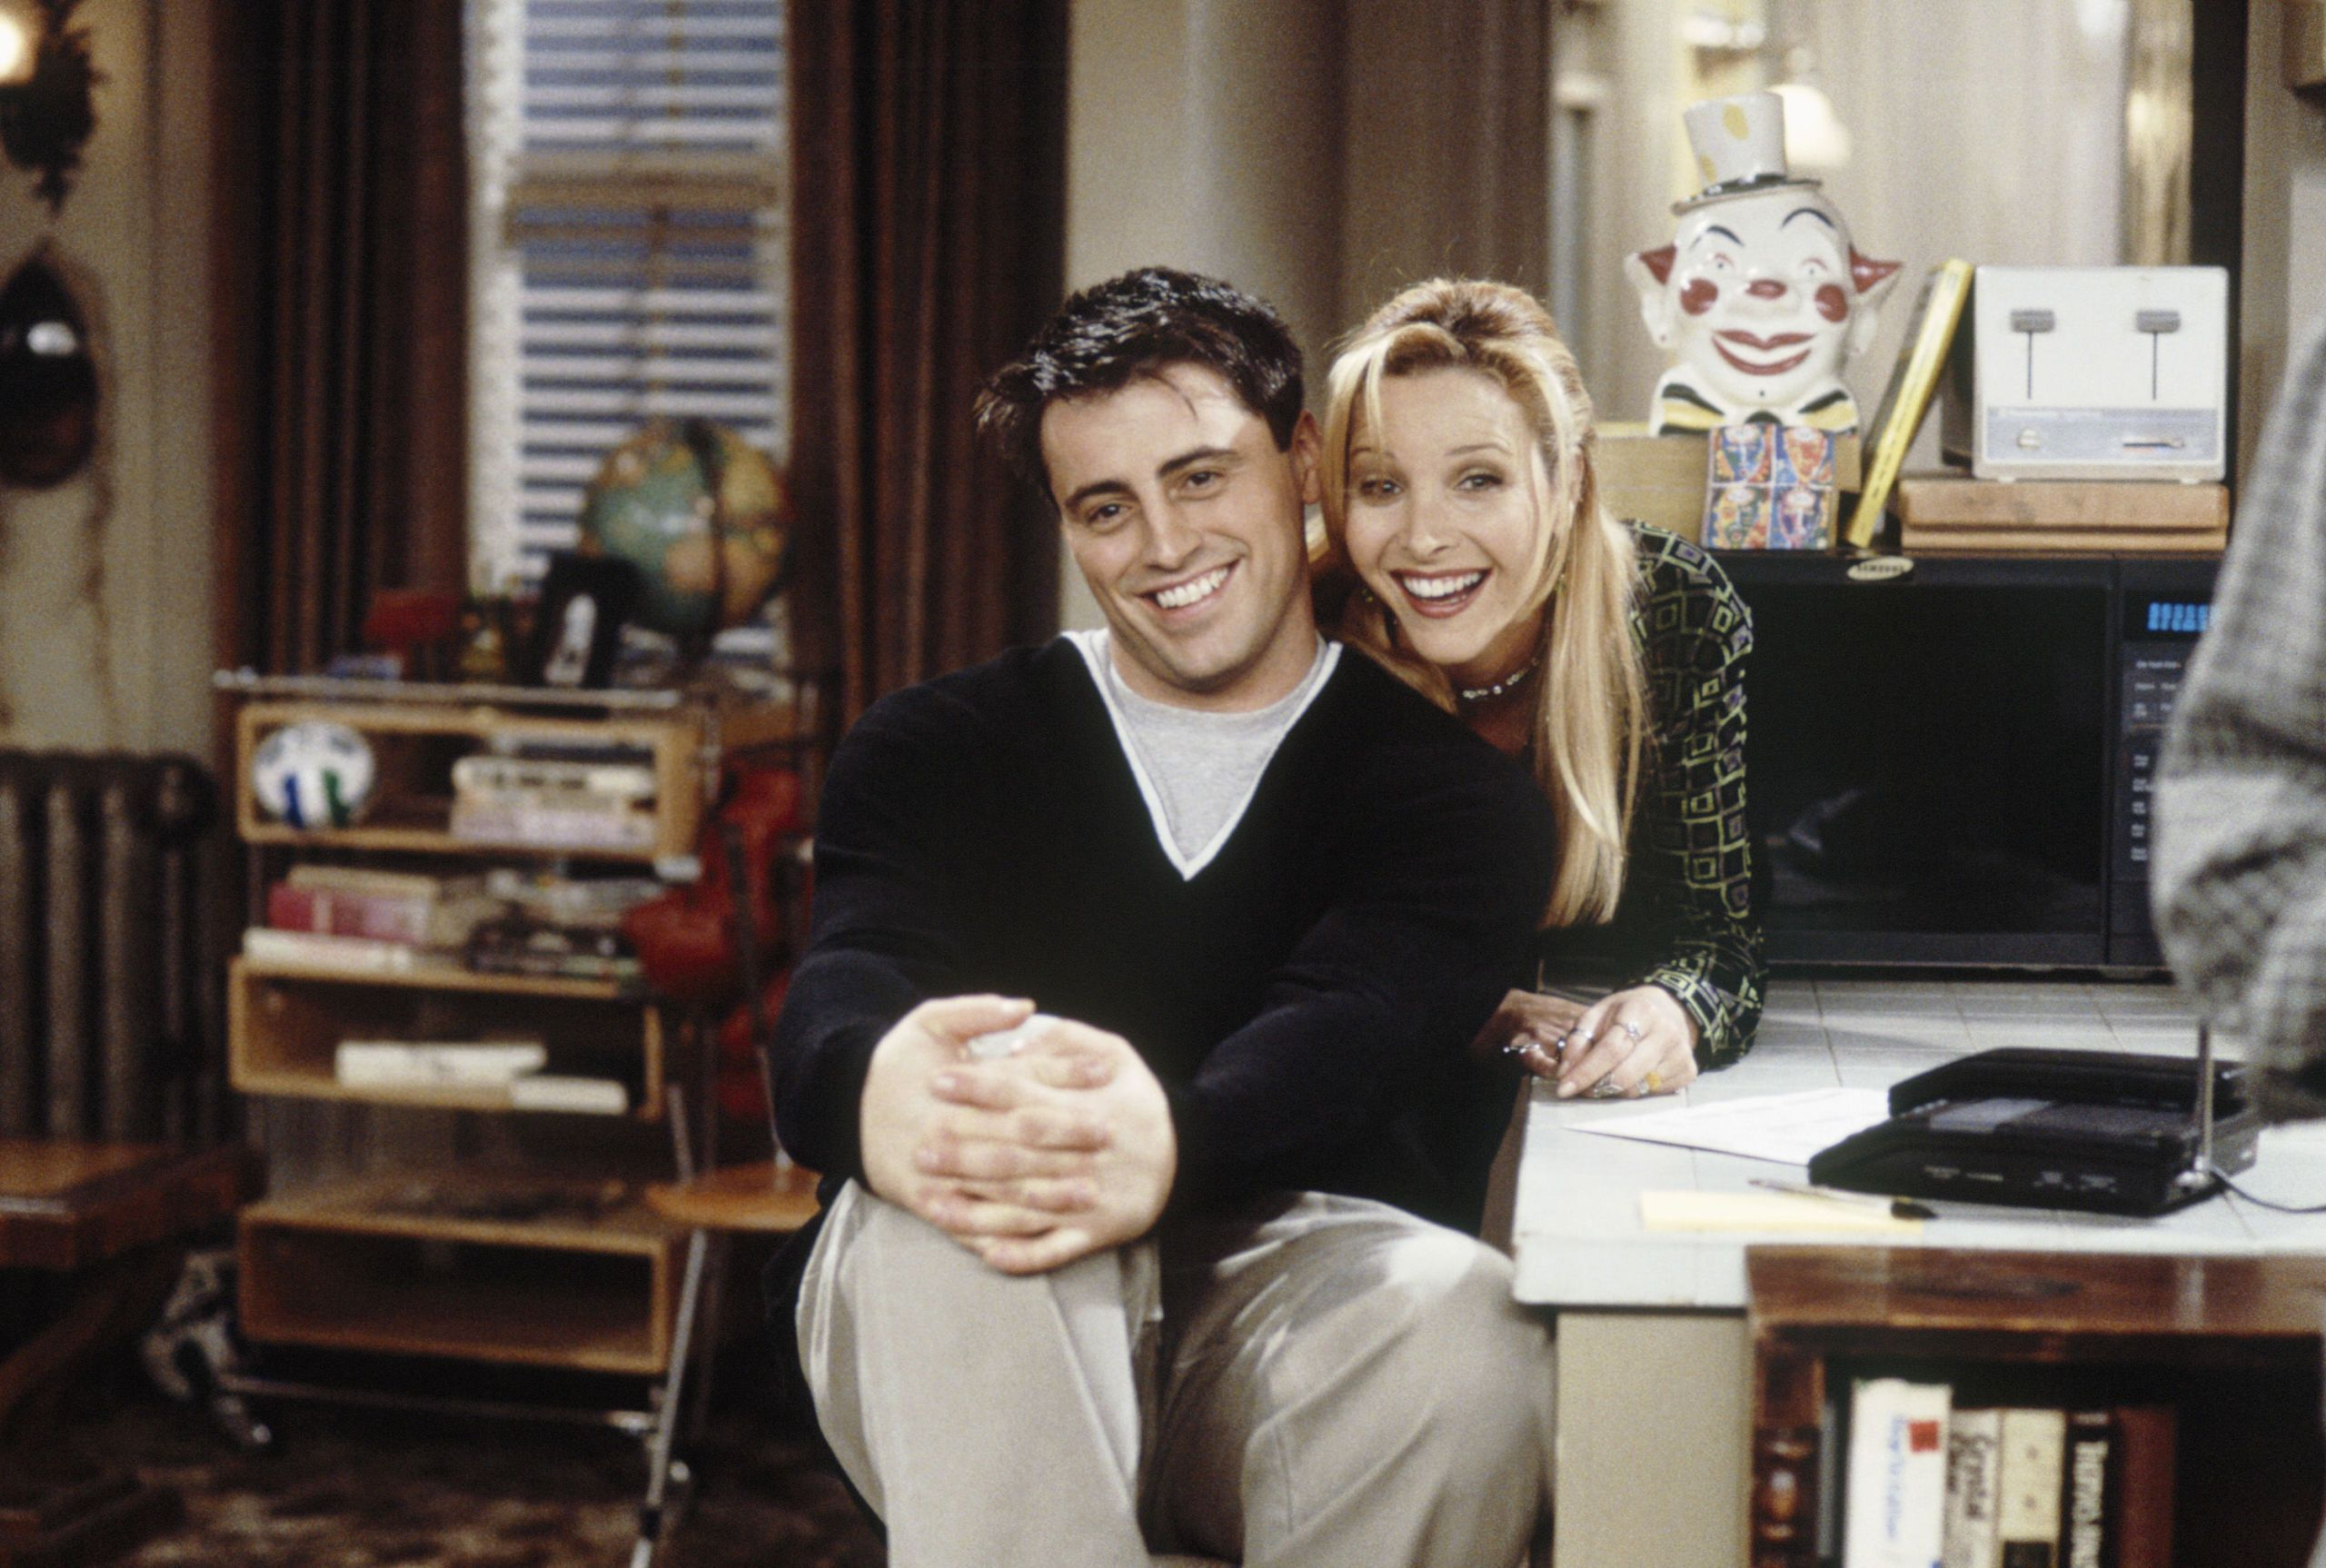 Do phoebe and joey ever hook up